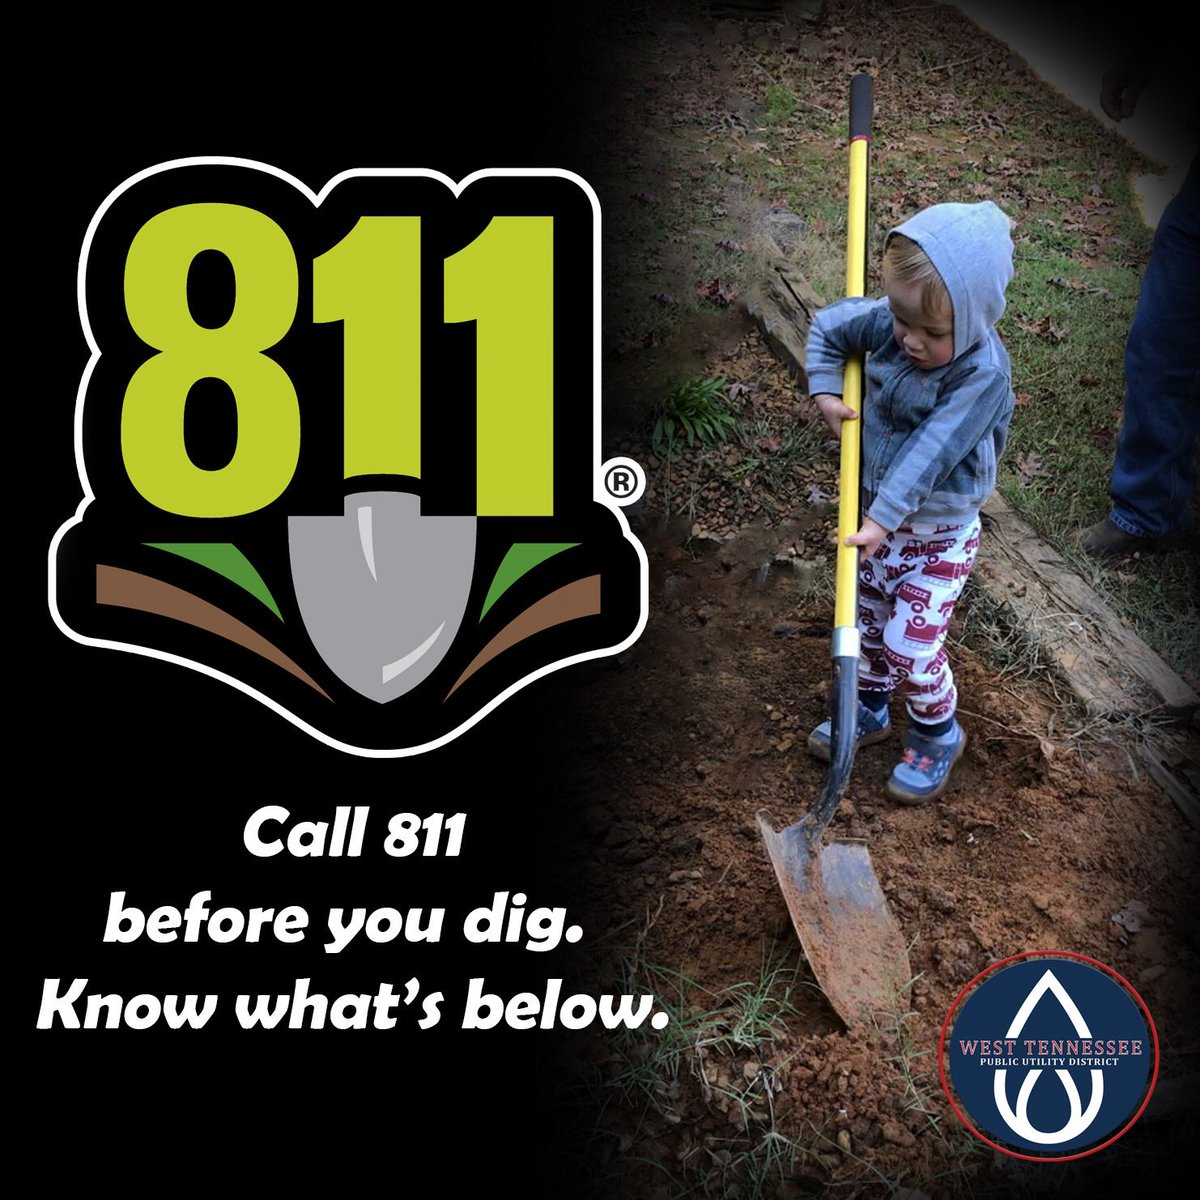 West Tennessee Public Utility District On Twitter Call 811 Before You Dig Missing children are being sacrificed by the shadow government! twitter